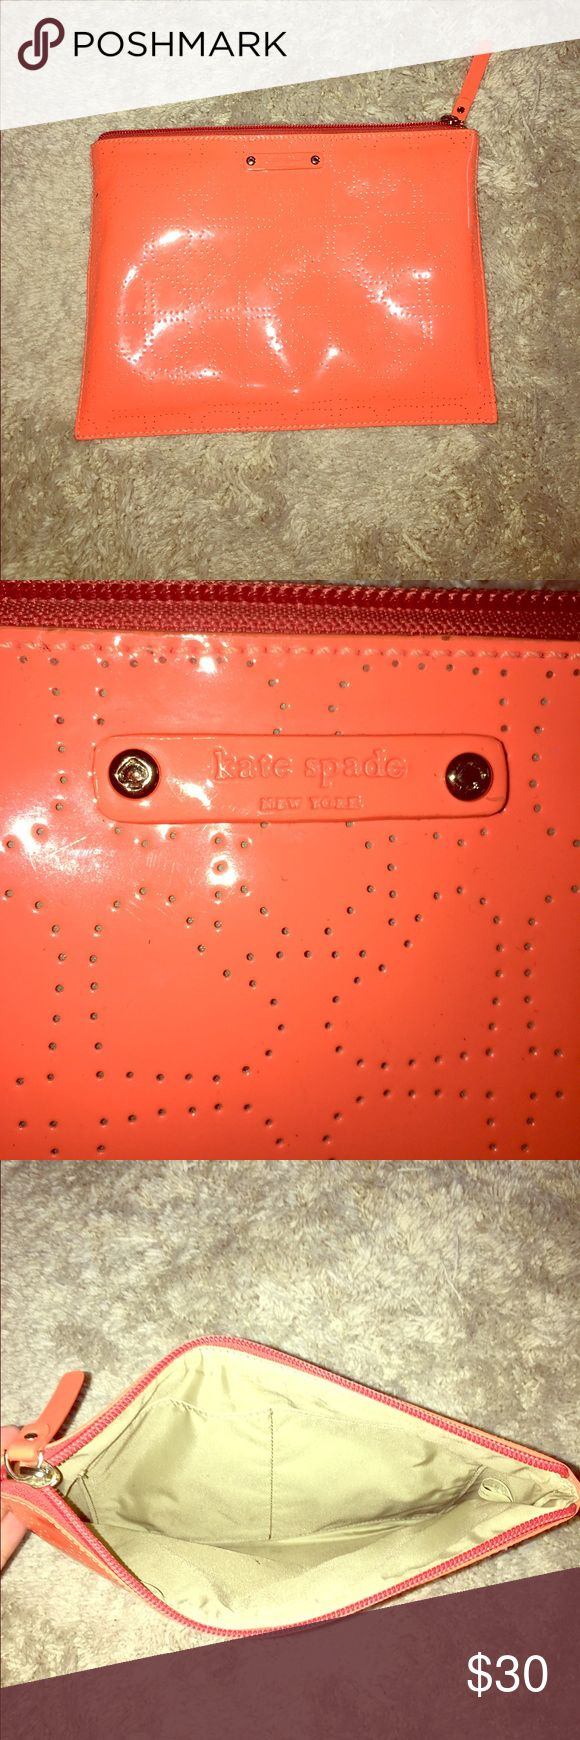 Kate Spade Orange Statement Clutch Orange Clutch from Kate Spade, perfect for a statement piece for a night out! Perfect size to fit a phone, lipsticks, mints, and anything else needed for night out! Great condition! kate spade Bags Clutches & Wristlets